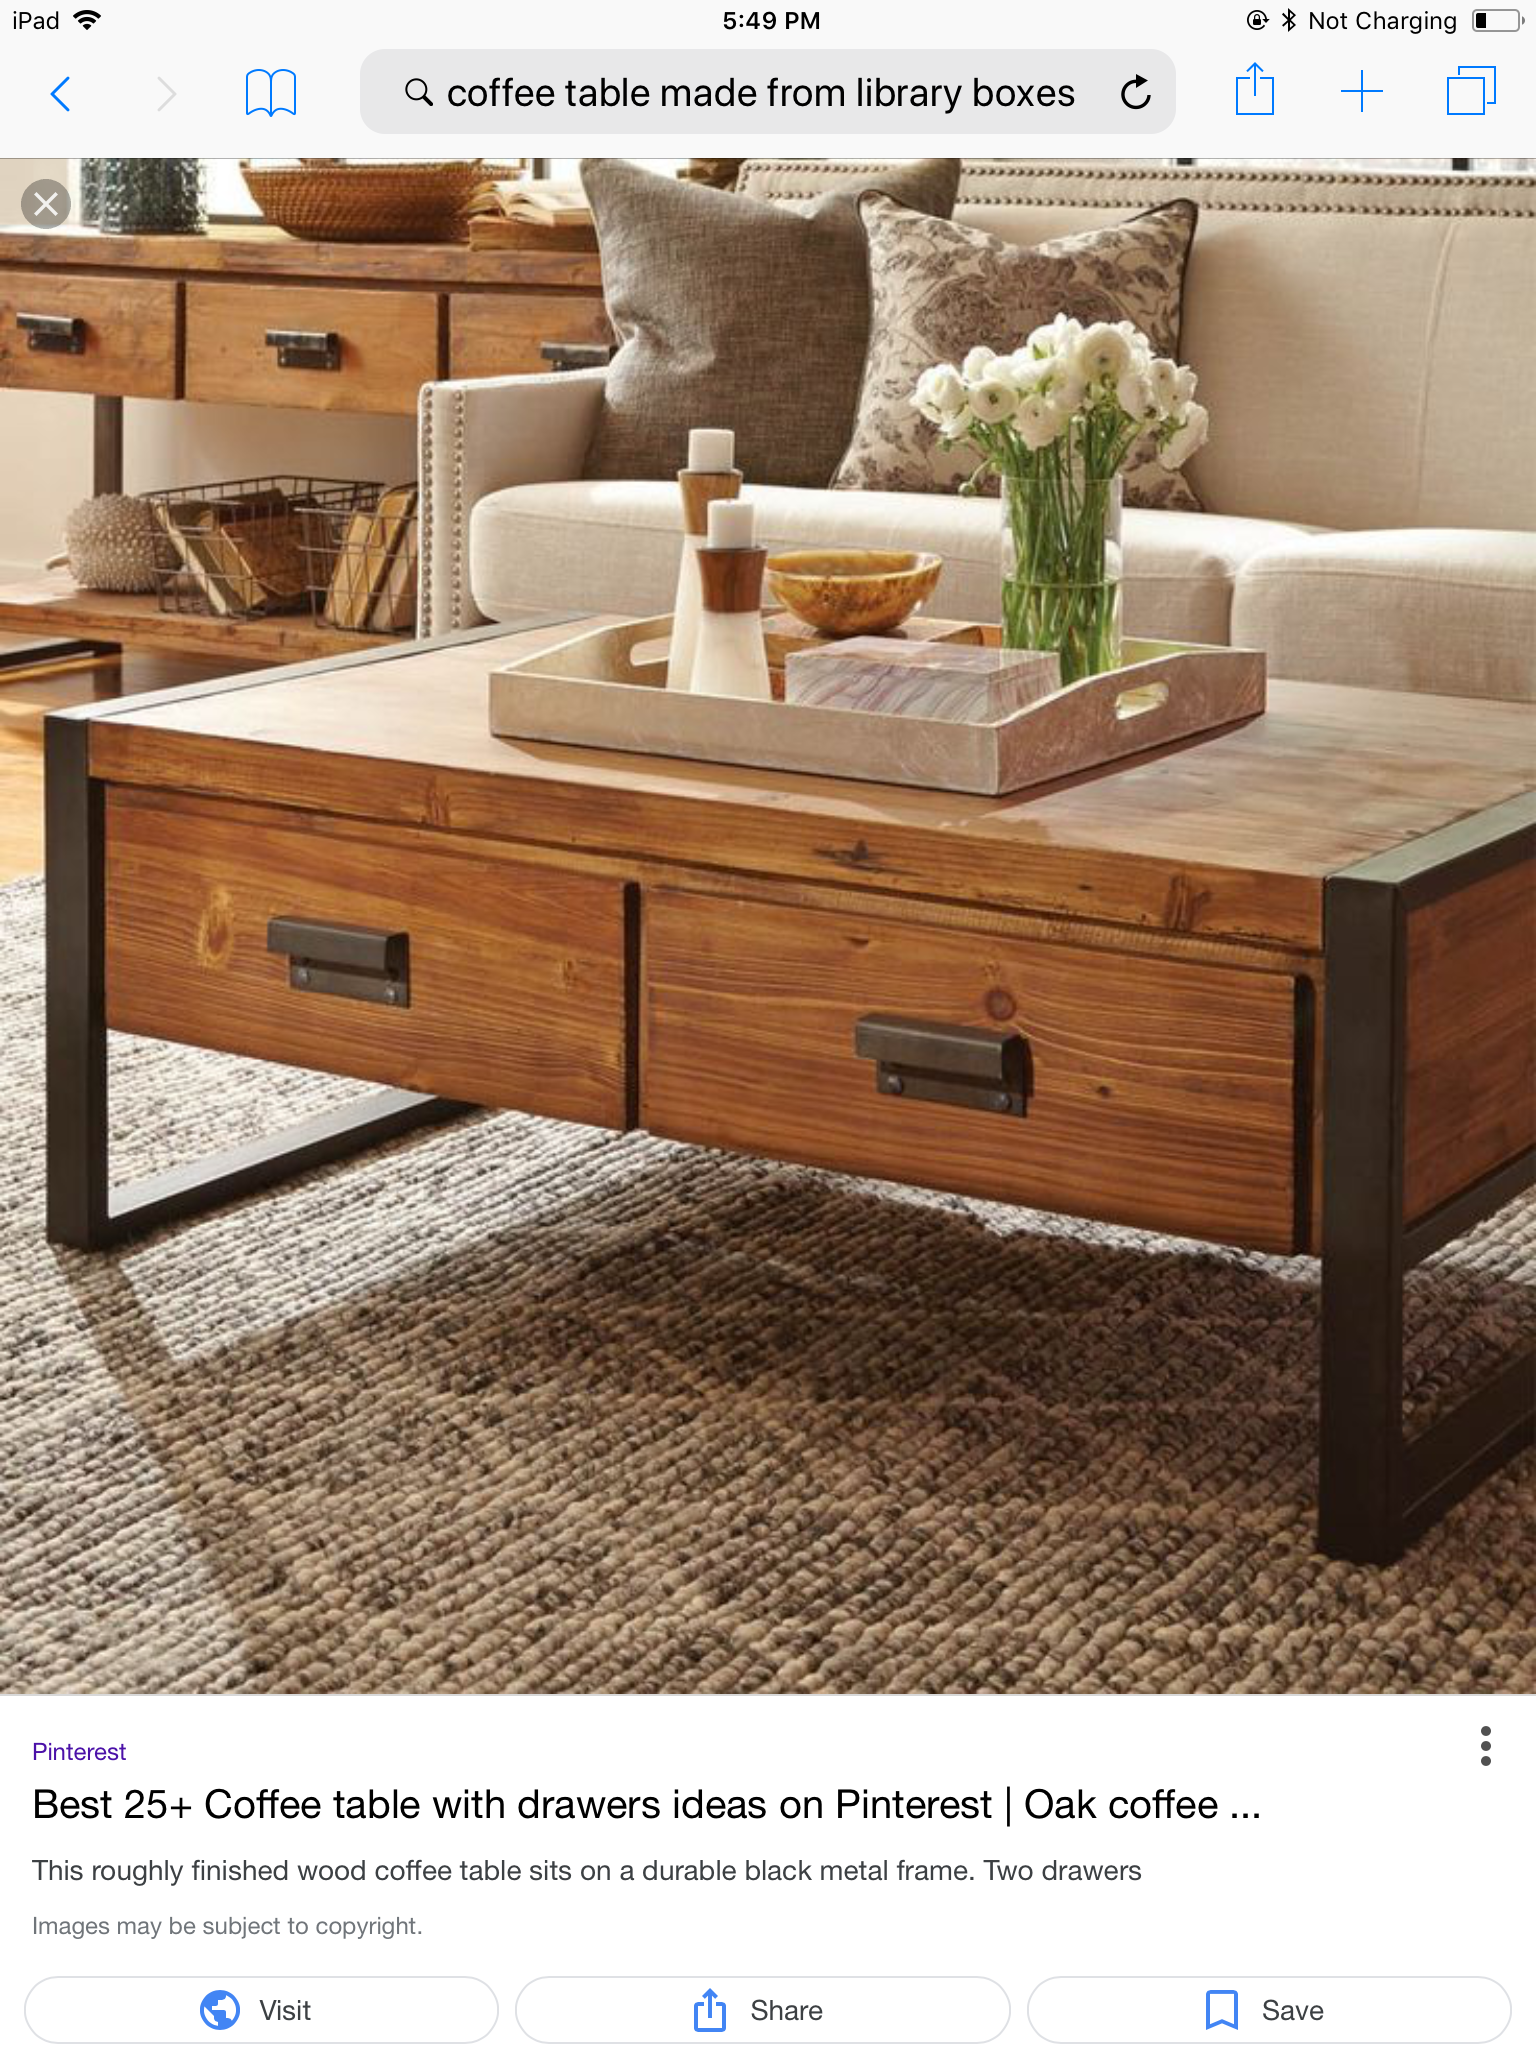 Pin By Laura Kump On Decorating Ideas Coffee Table Coffee Table With Storage Coffee Table Wood [ 2048 x 1536 Pixel ]